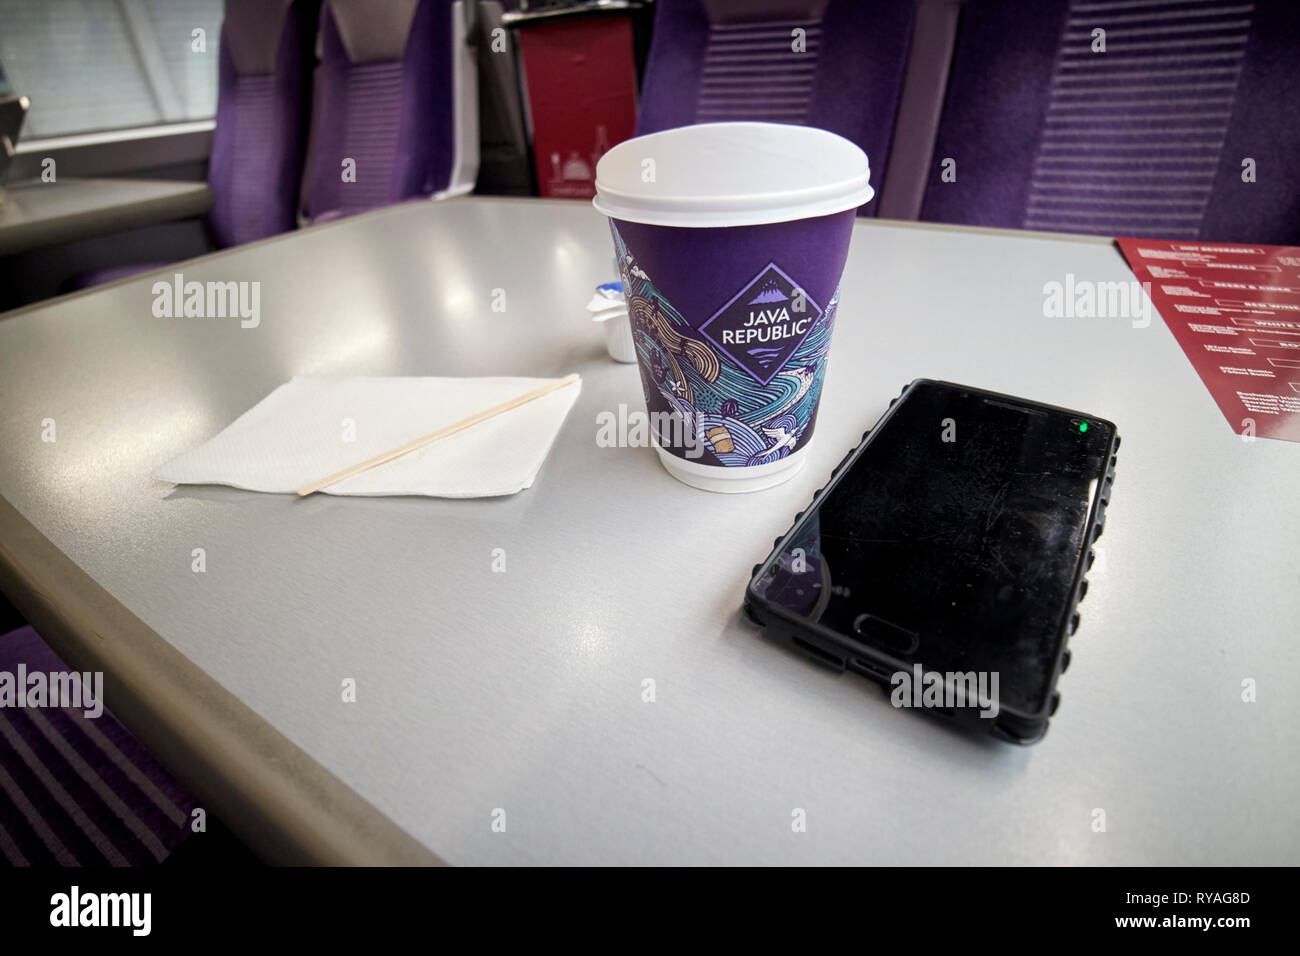 coffee and smartphone on enterprise train between Belfast and Dublin crossing the republic of Ireland northern ireland border - Stock Image